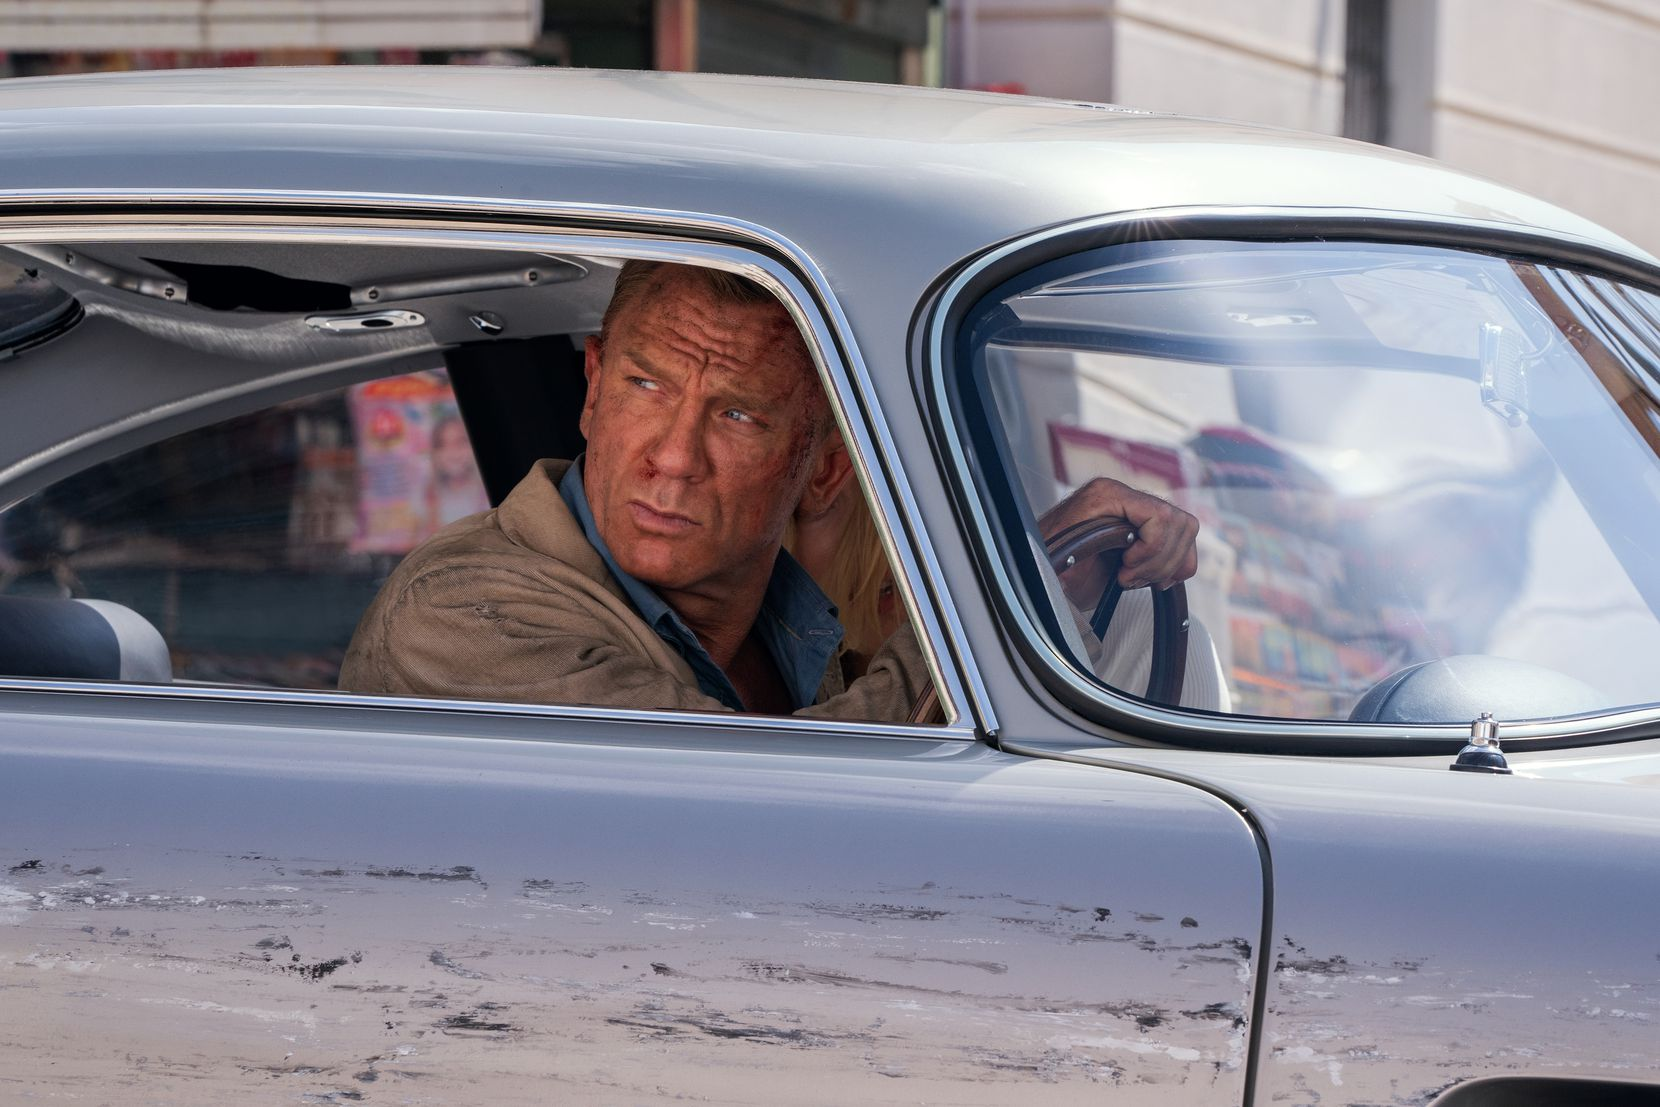 ames Bond (Daniel Craig) and Dr. Madeleine Swann (Lea Seydoux) drive through Matera, Italy in 'No Time To Die.'